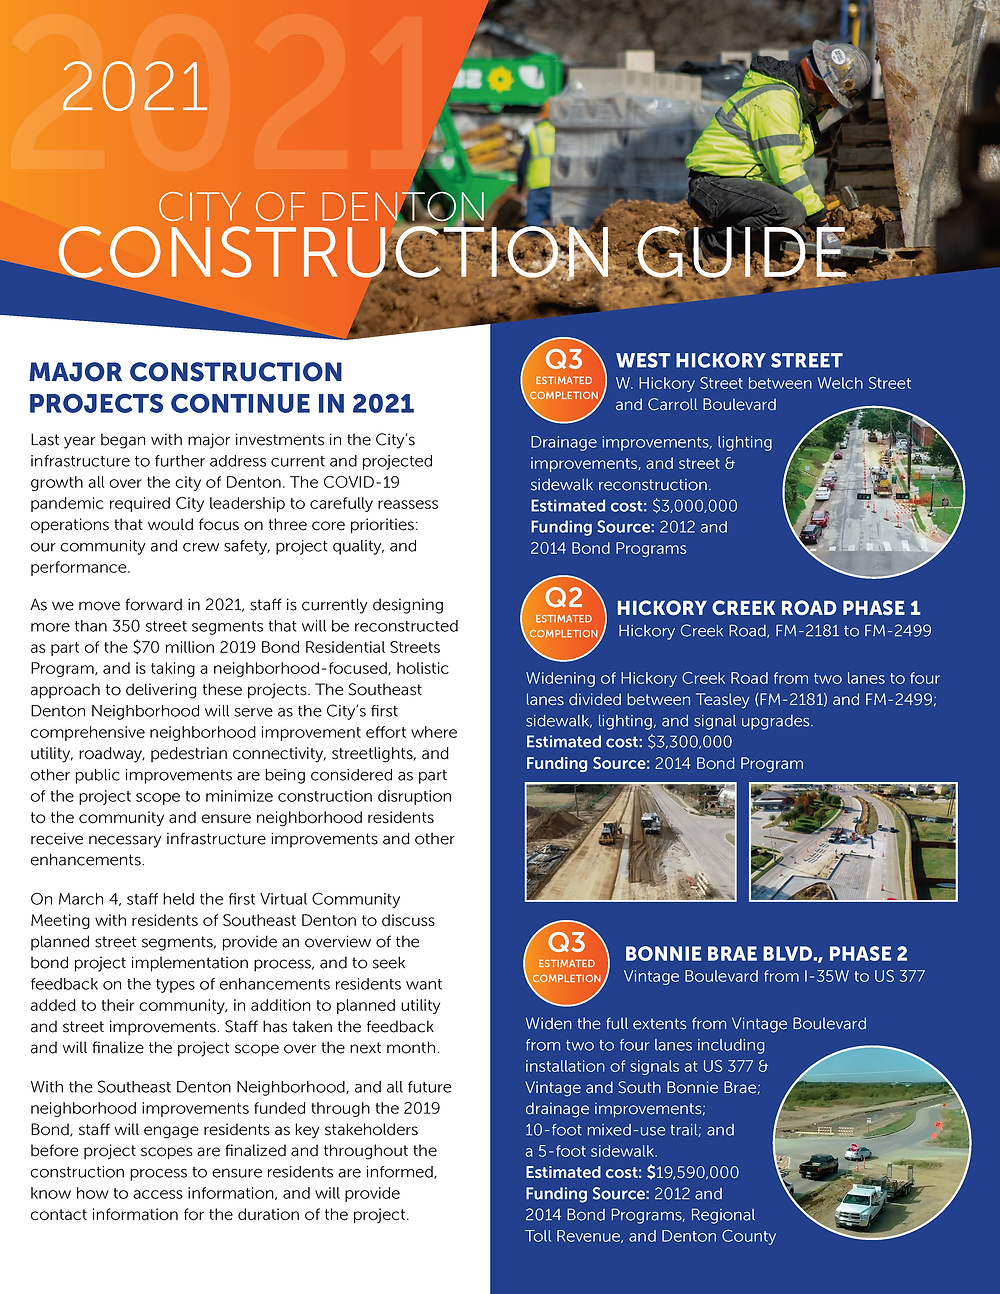 The City of Denton 2021 Construction Guide